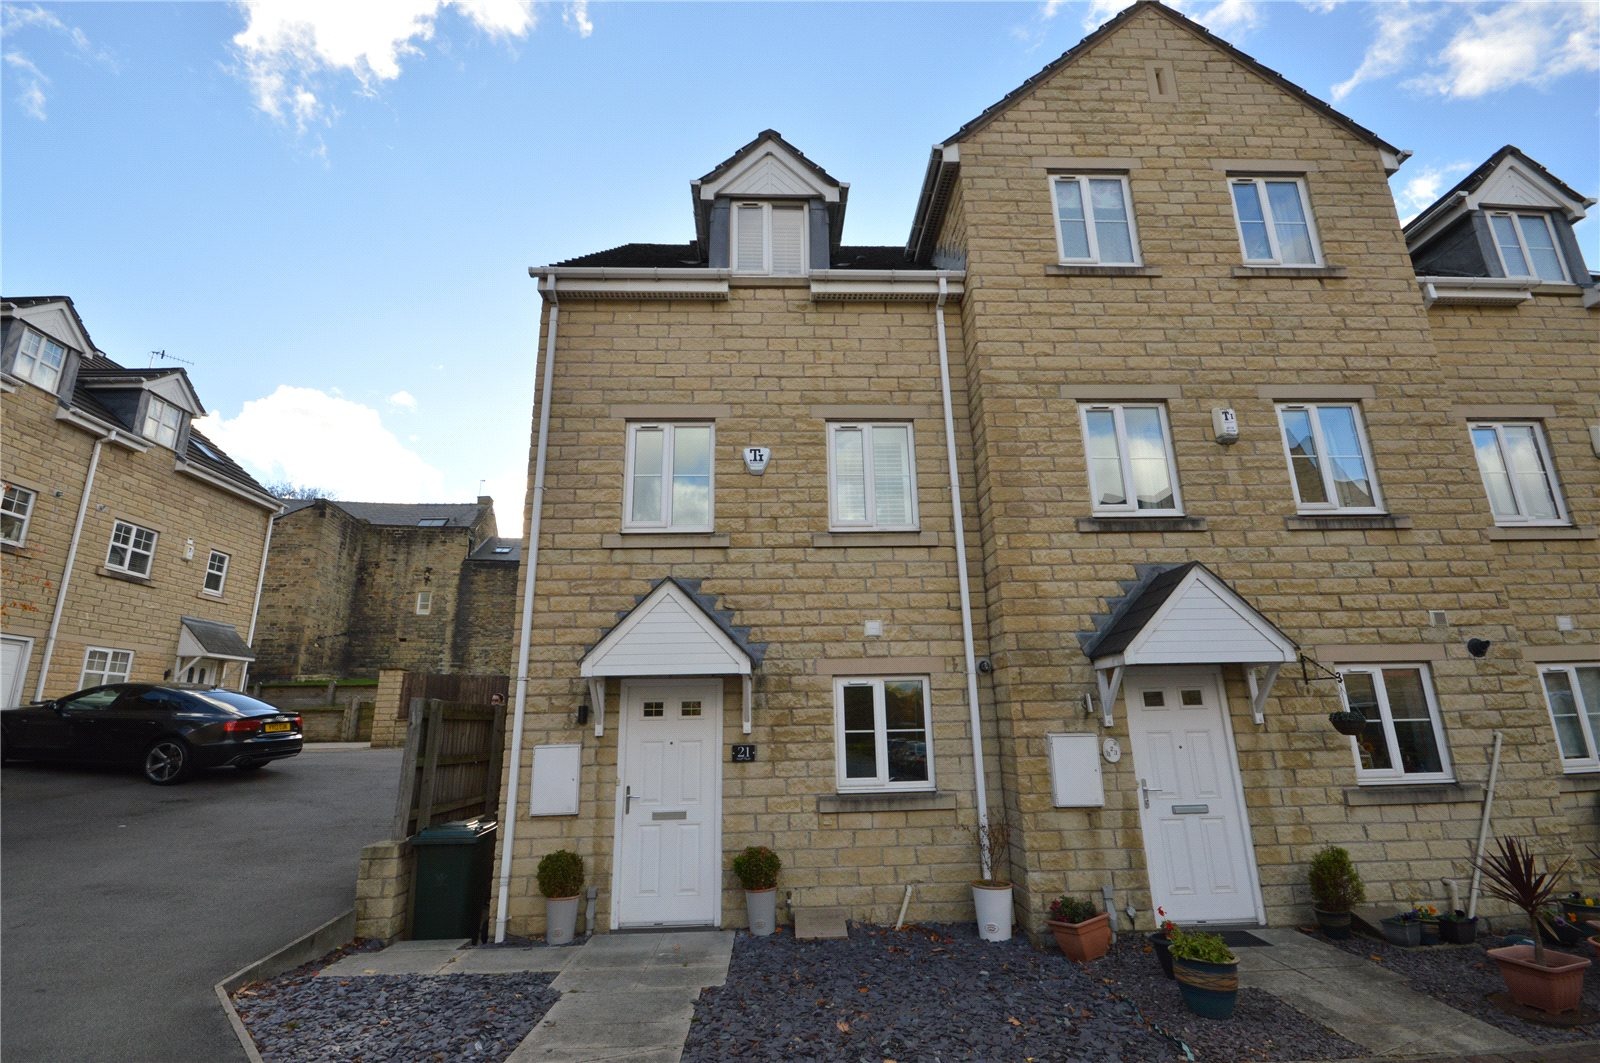 property for sale in Bradford, exterior of end terrace house